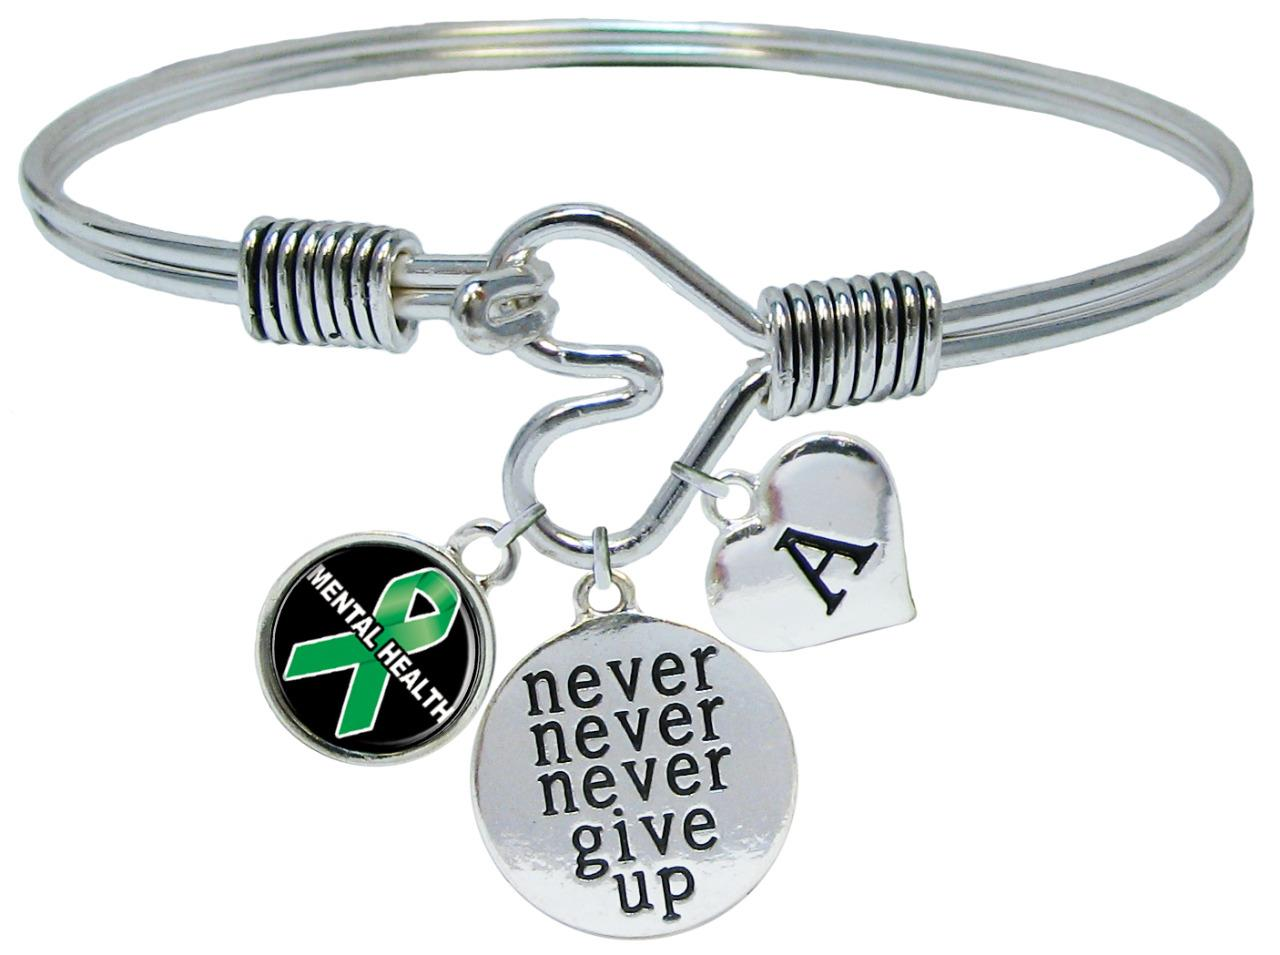 cheap green muscular mental bracelet bracelets deals guides on get health find at lime lymphoma dystrophy shopping disease support quotations line awareness lyme